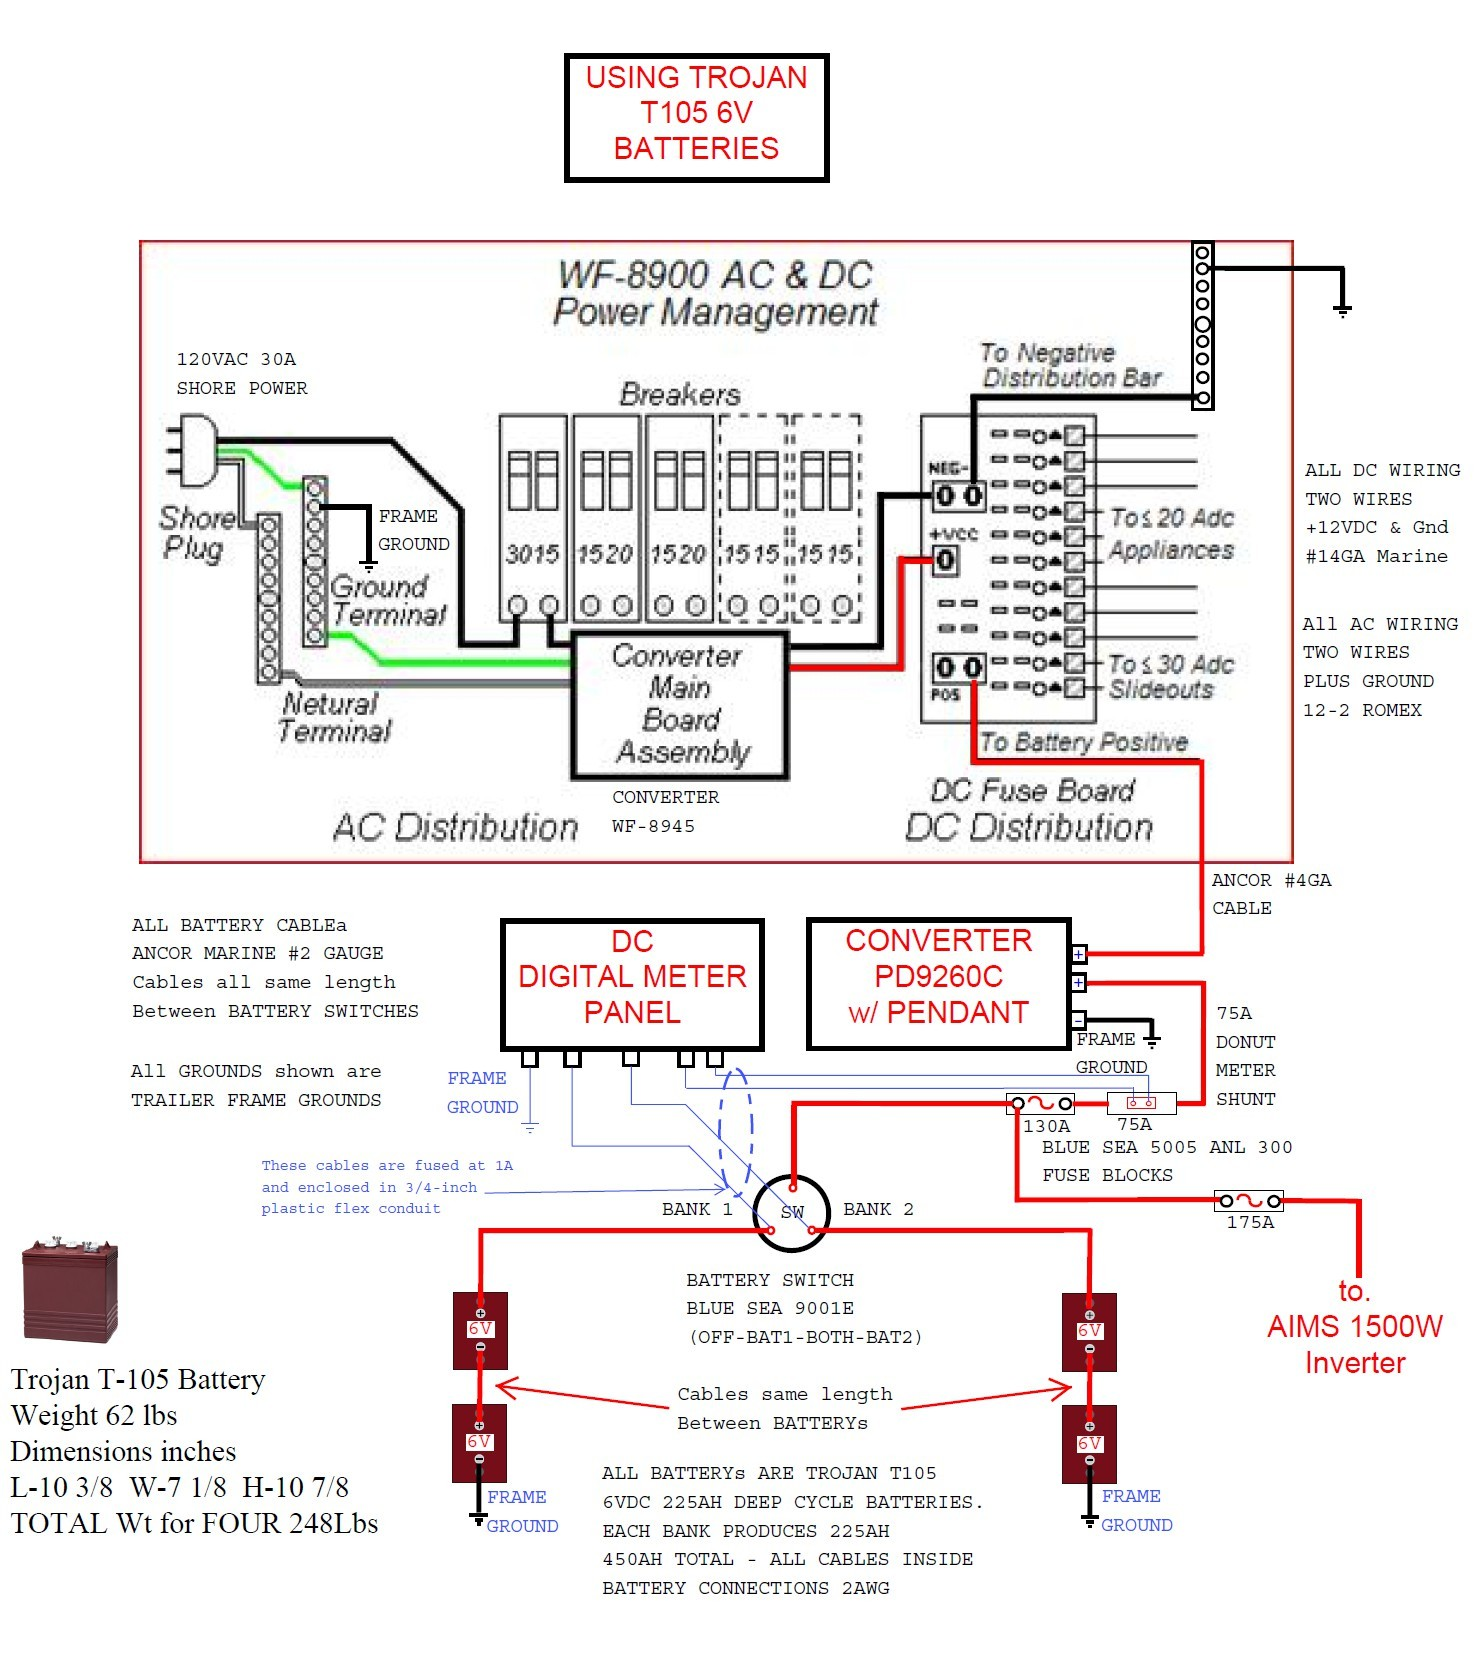 Astonishing Rv Battery Disconnect Switch Wiring Diagram 35 In 1999 Mitsubishi Eclipse Wiring Diagram with Rv